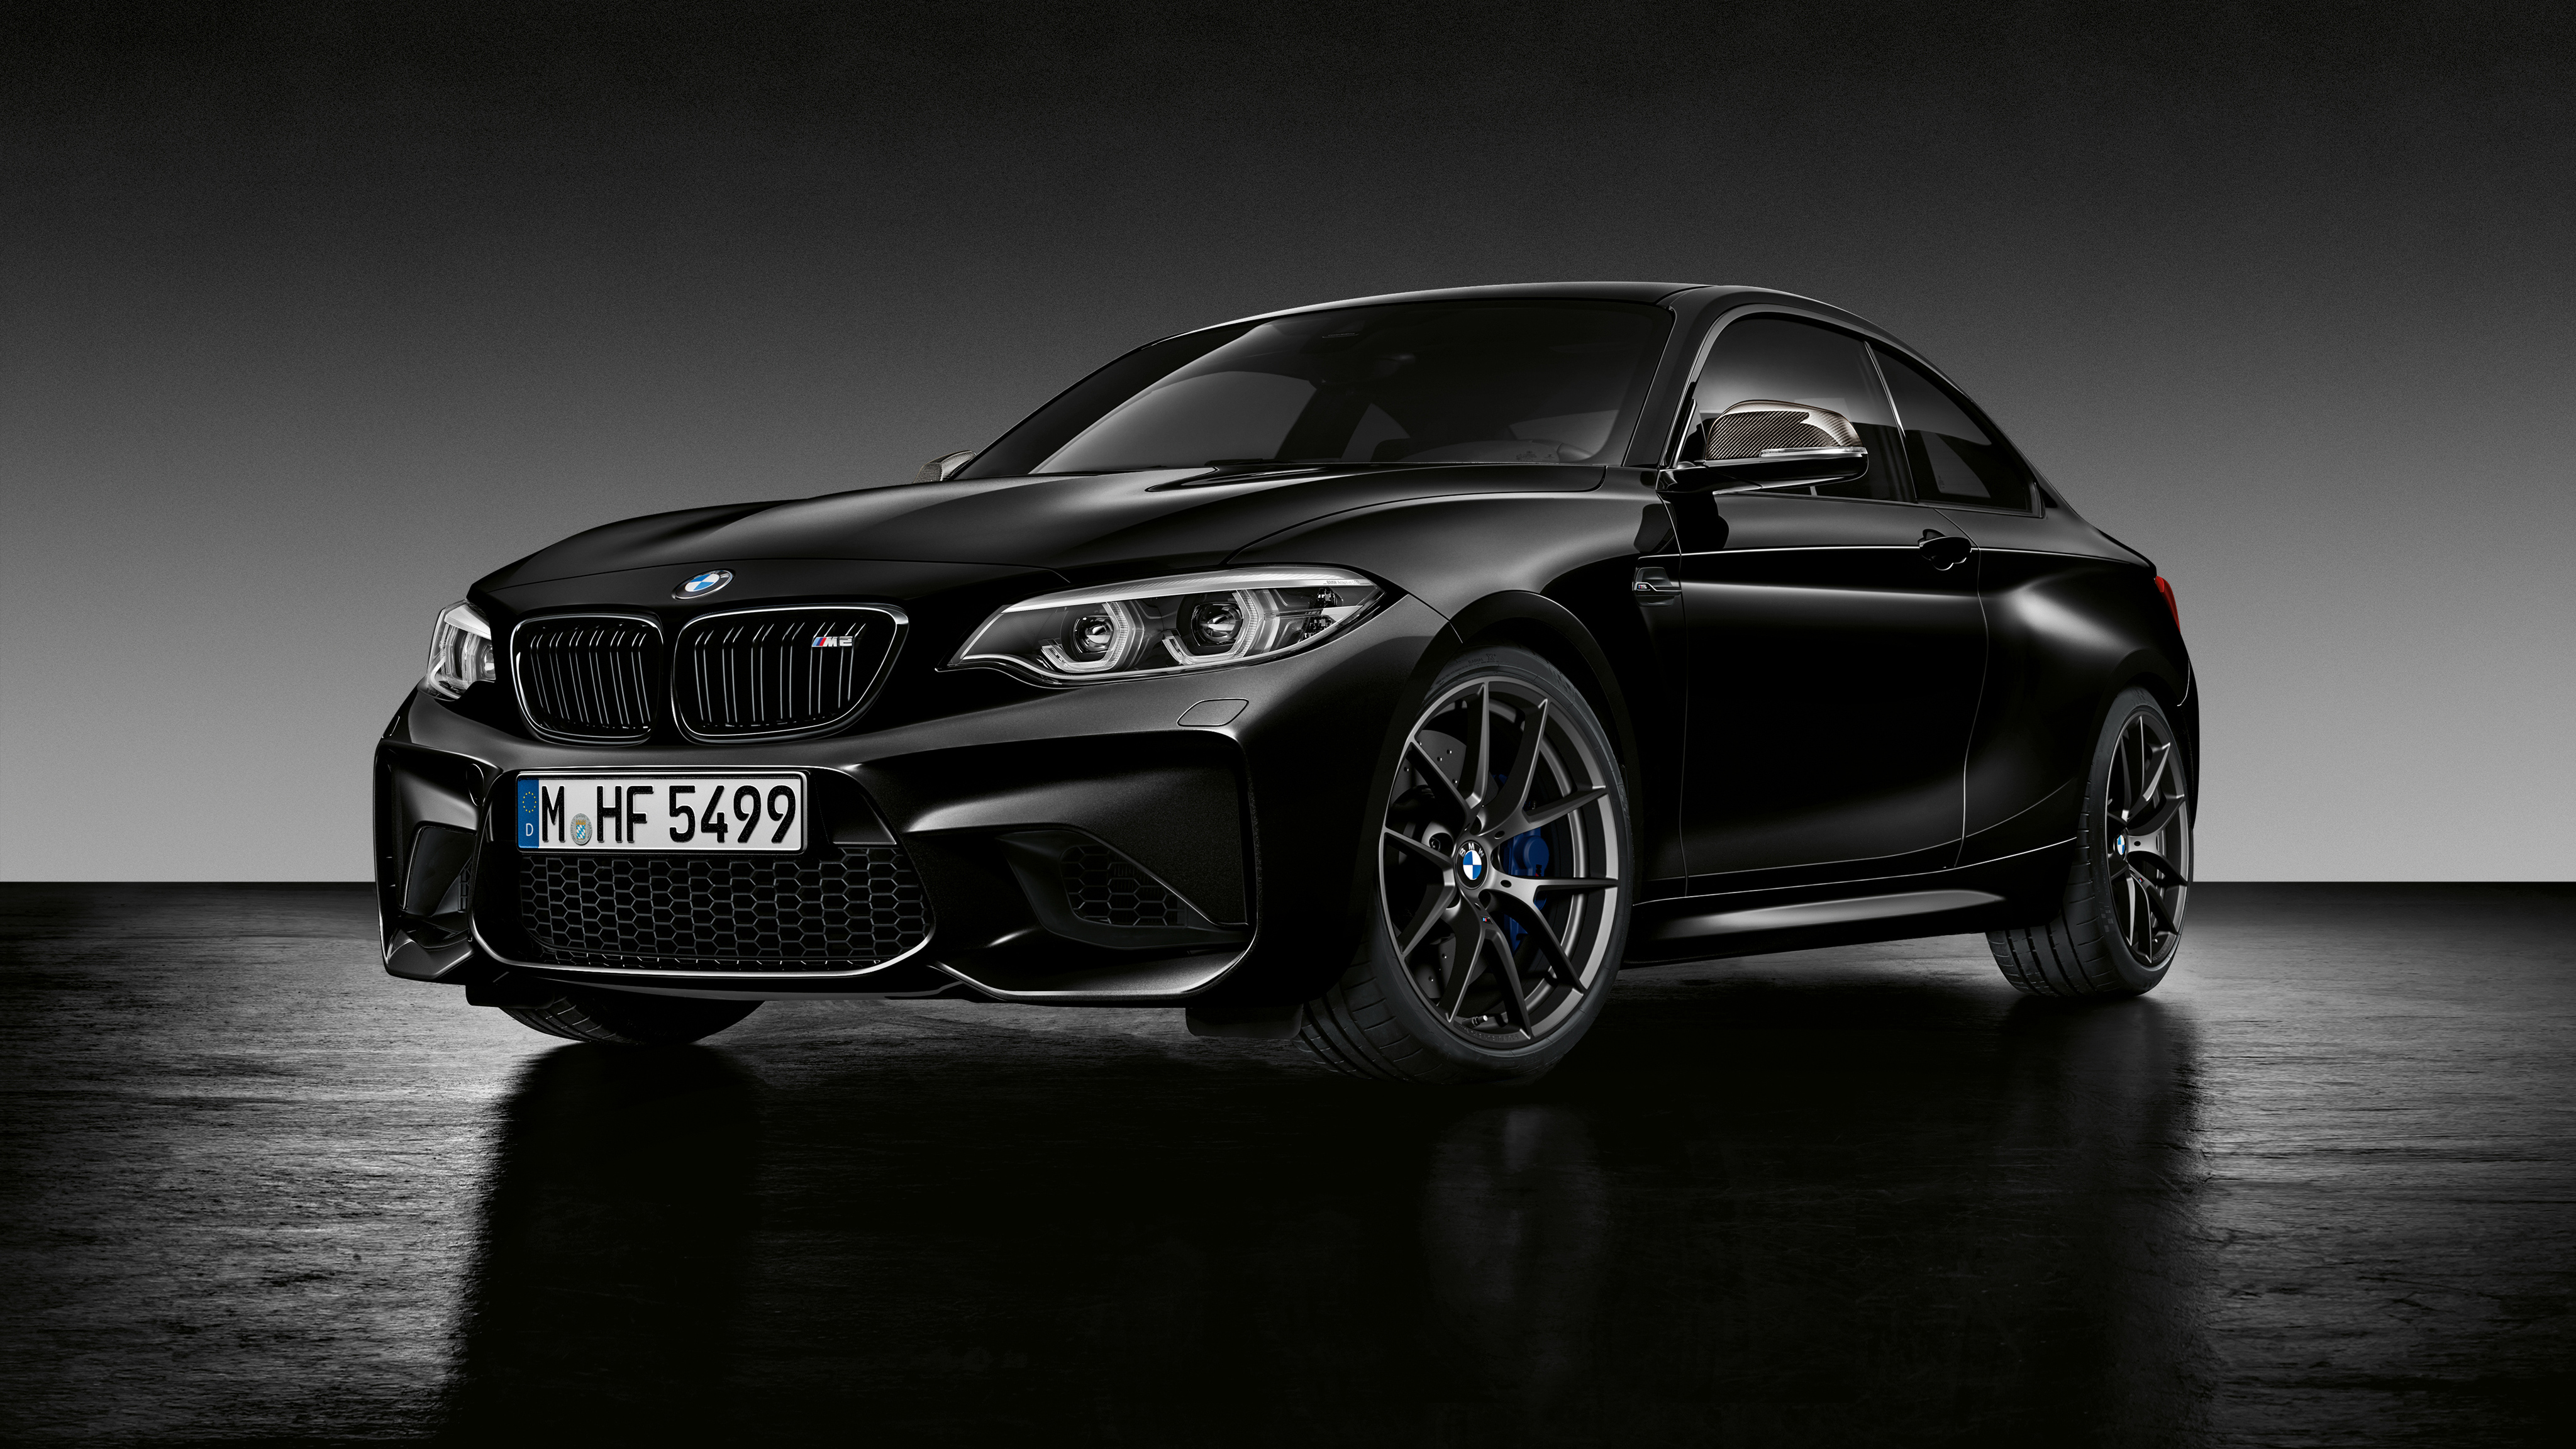 2018 Bmw M2 Coupe Edition Black Shadow 2 Wallpaper Hd Car Wallpapers Id 9911